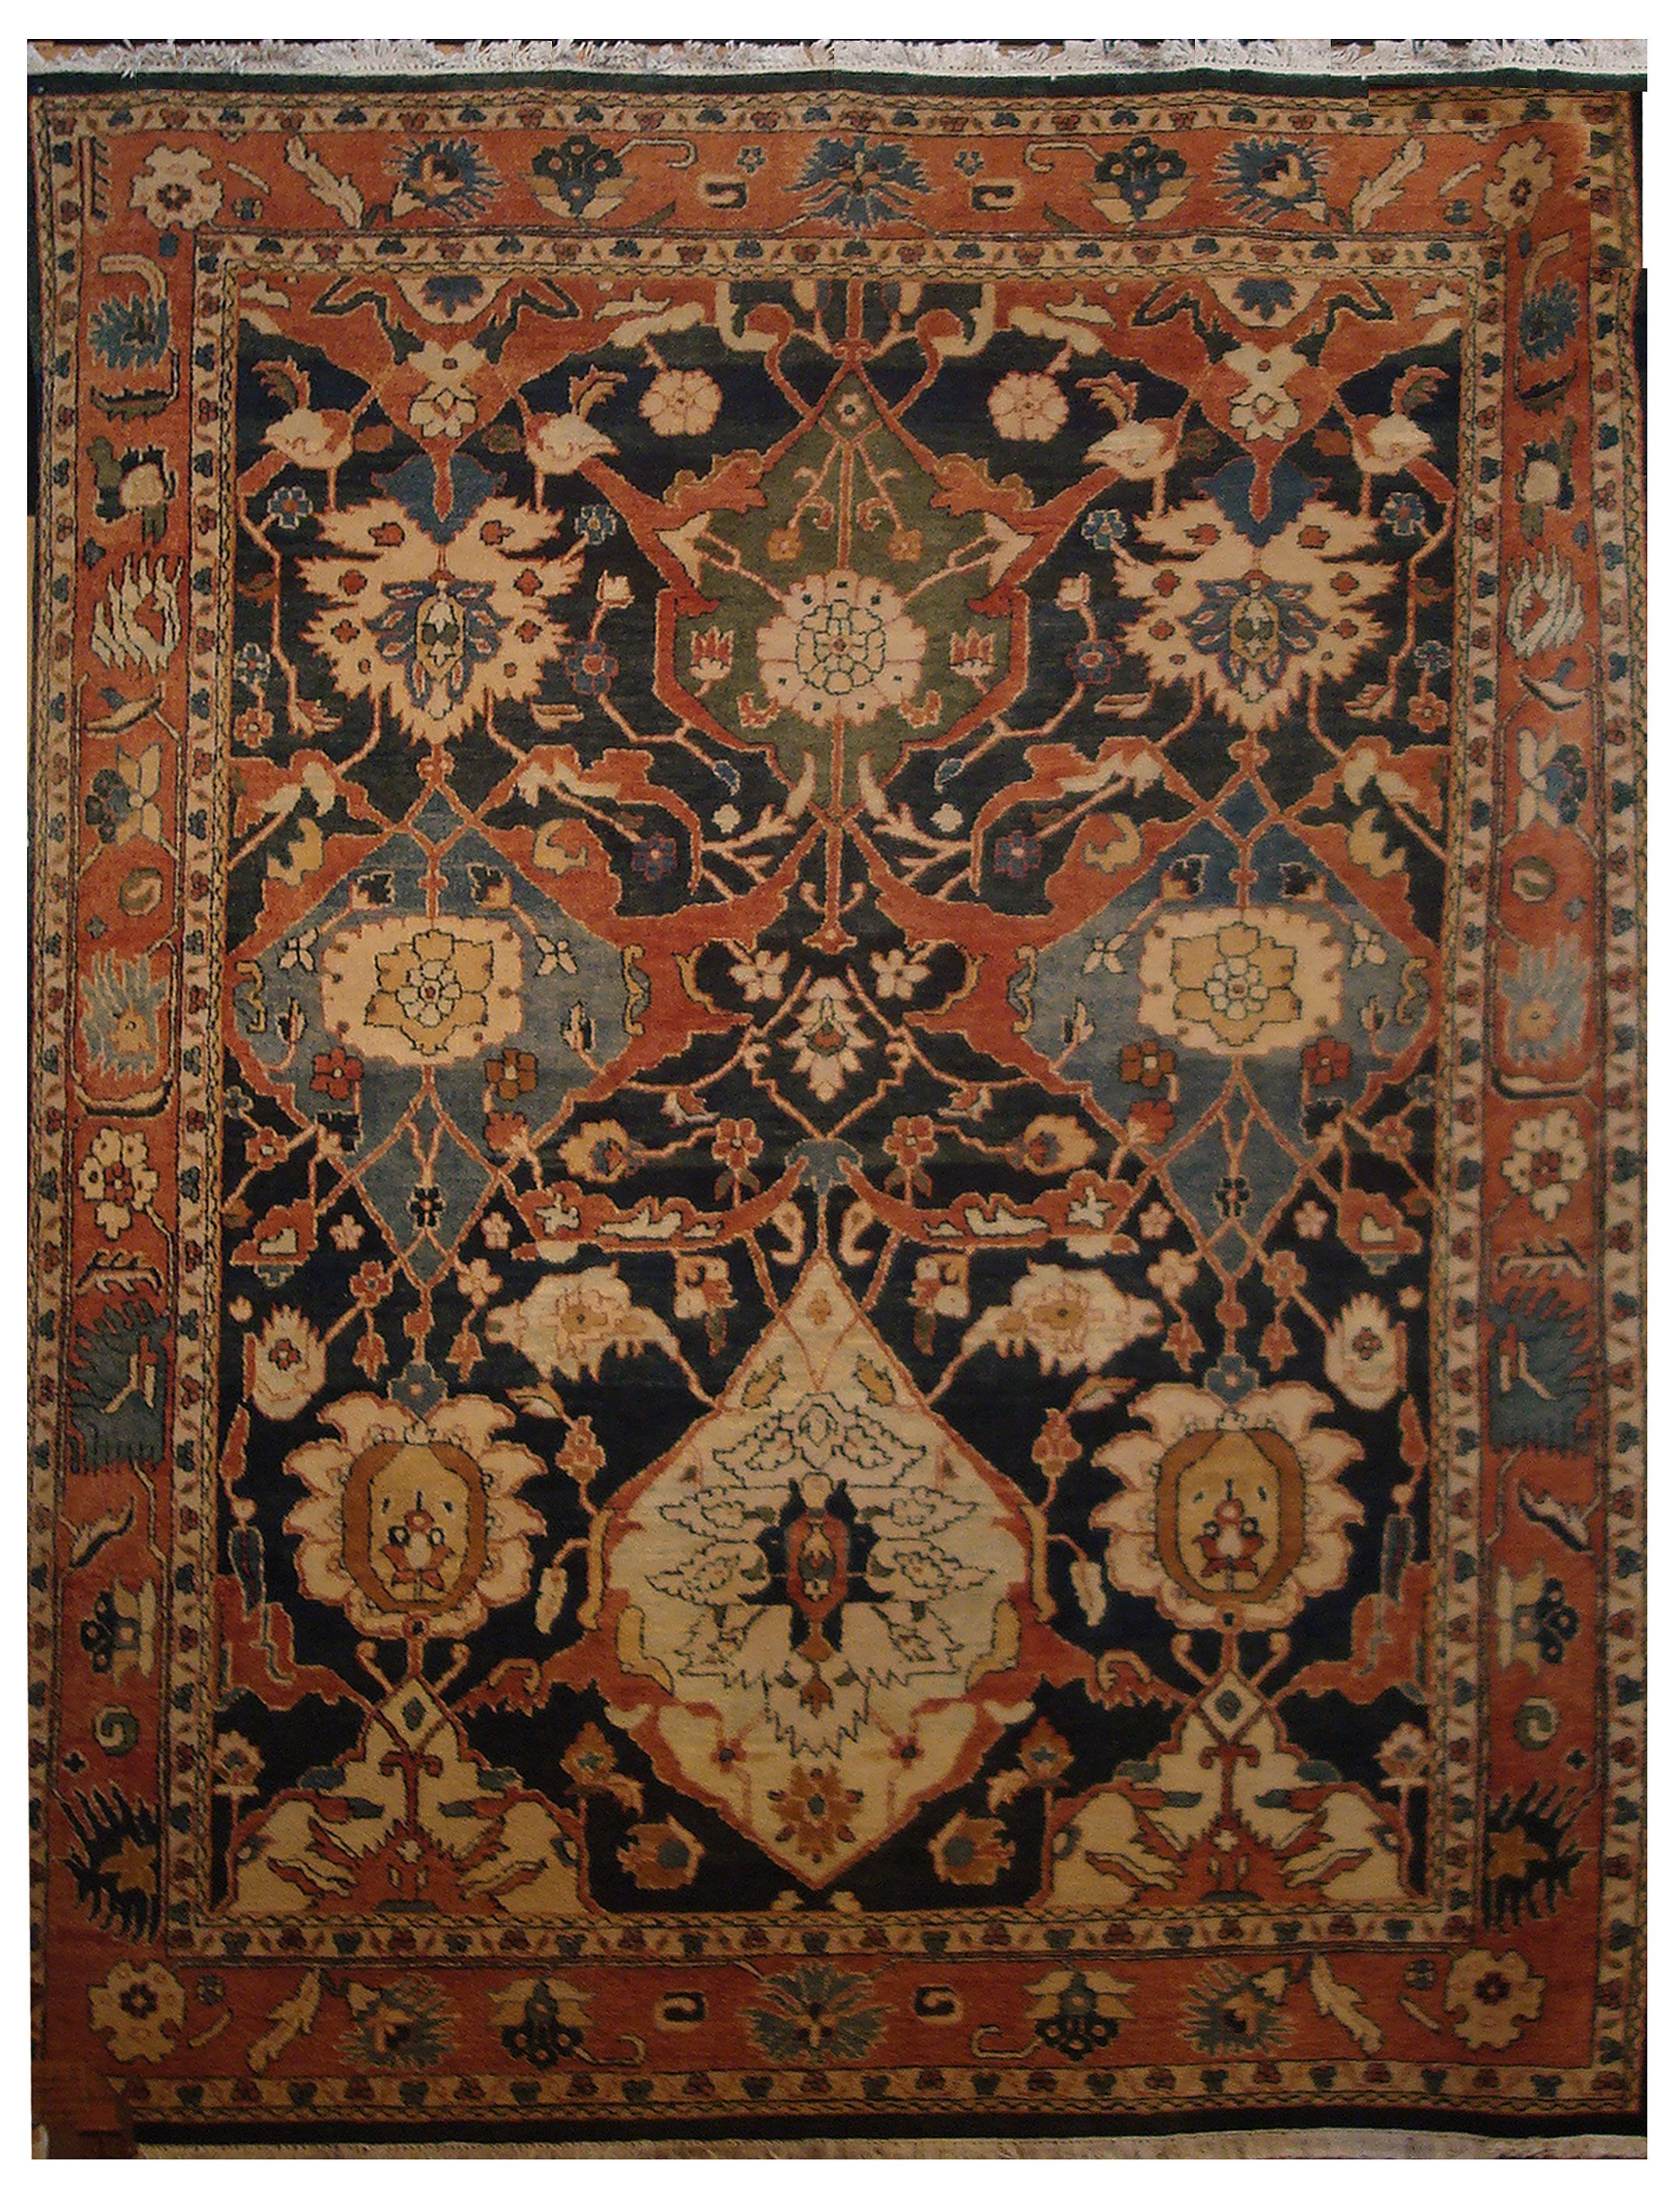 7 Best Rug Gallery ~ Cabot House Images On Pinterest | Hand Weaving, Knit  Rug And Woven Rug